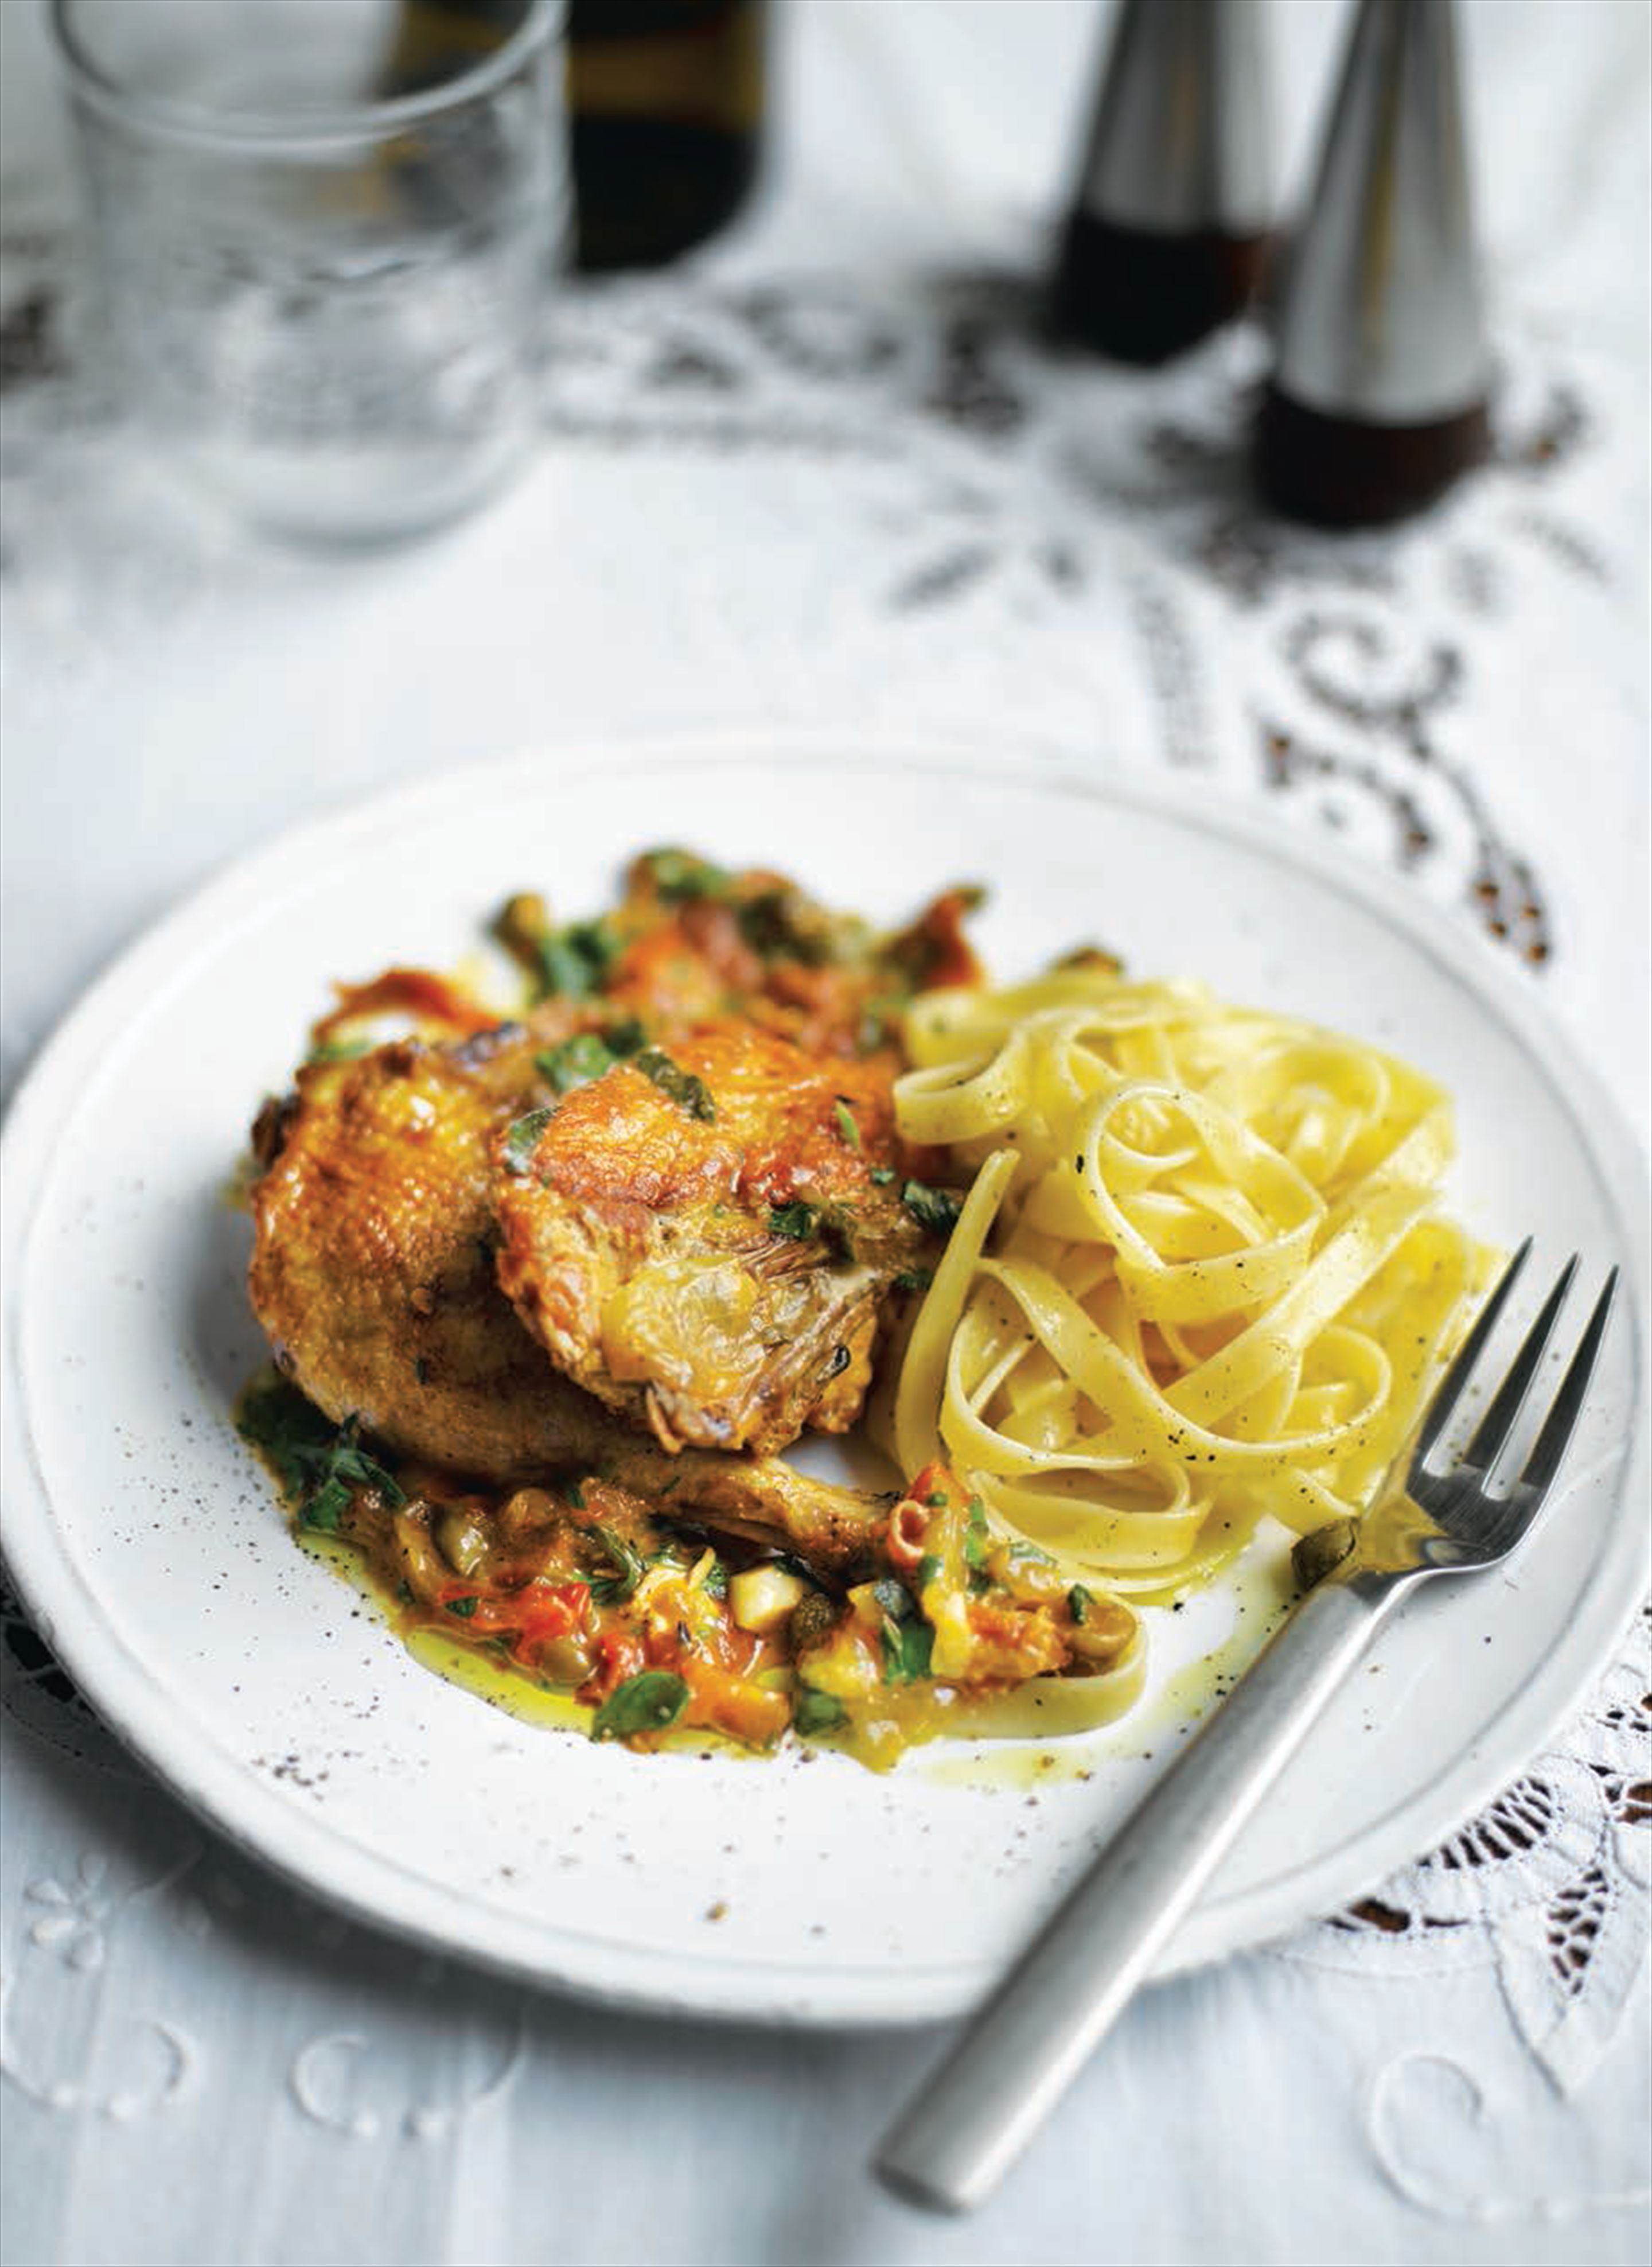 Pheasant with capers and prosciutto